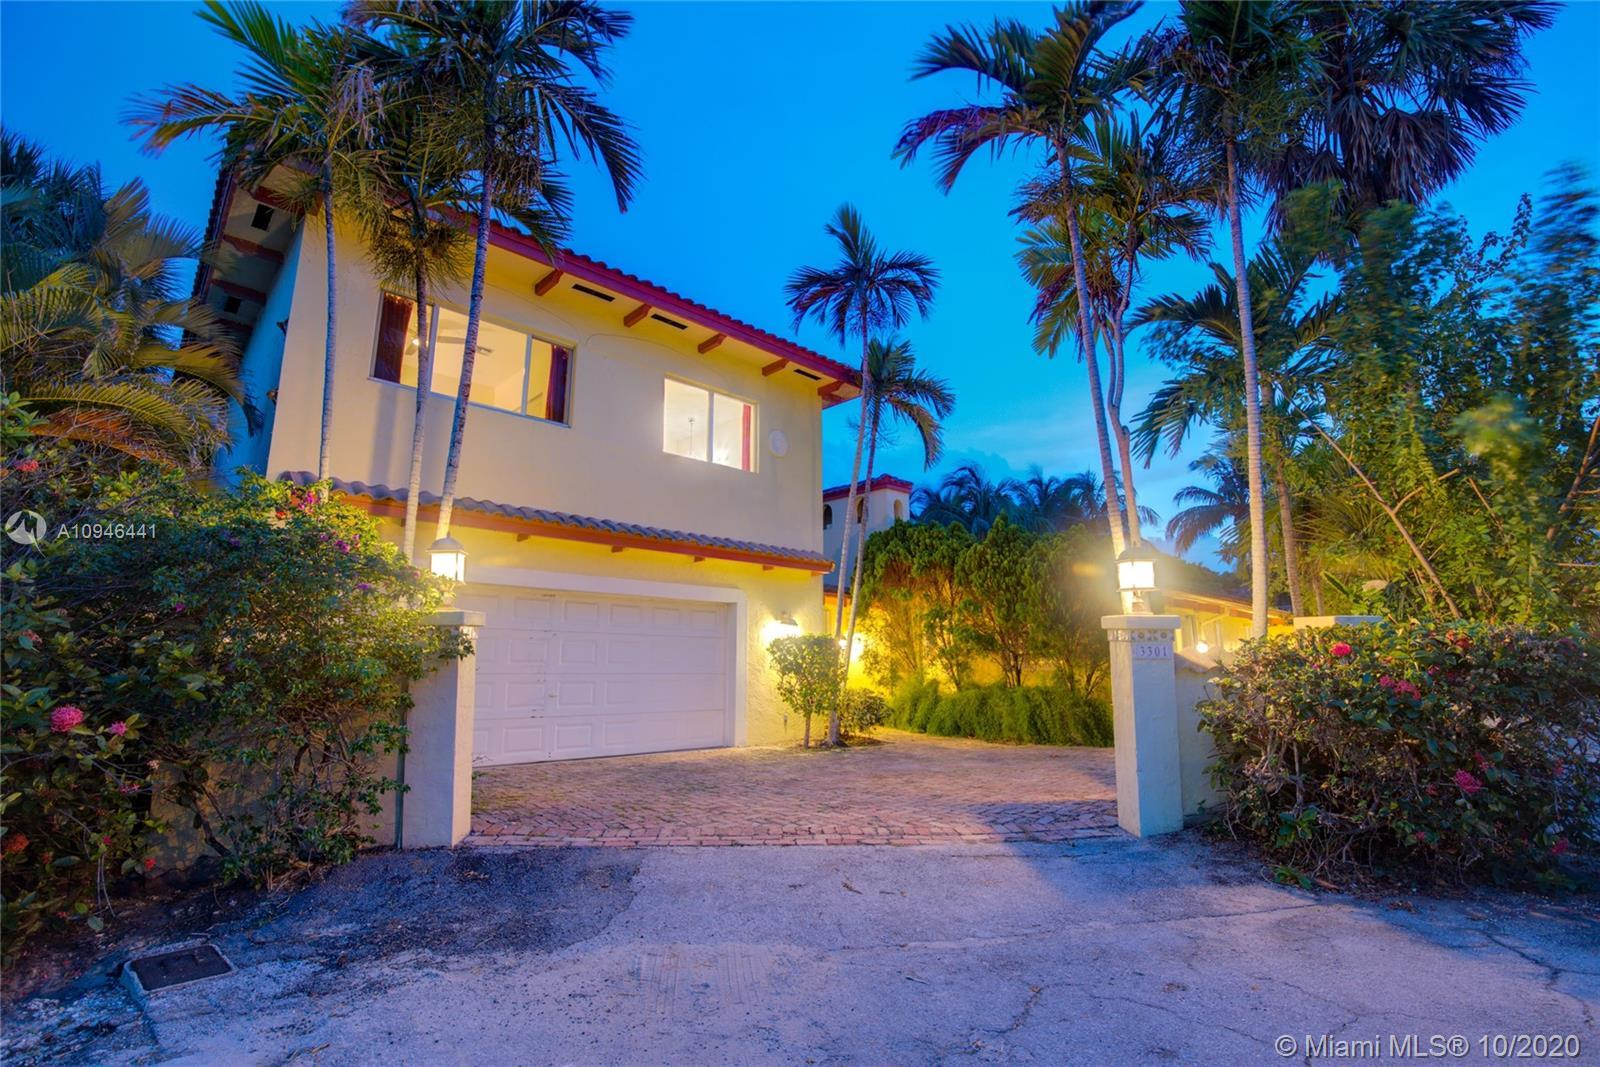 Birch Beach Haven is nestled between the nature preserve of Birch State Park and Ft Lauderdale Beach